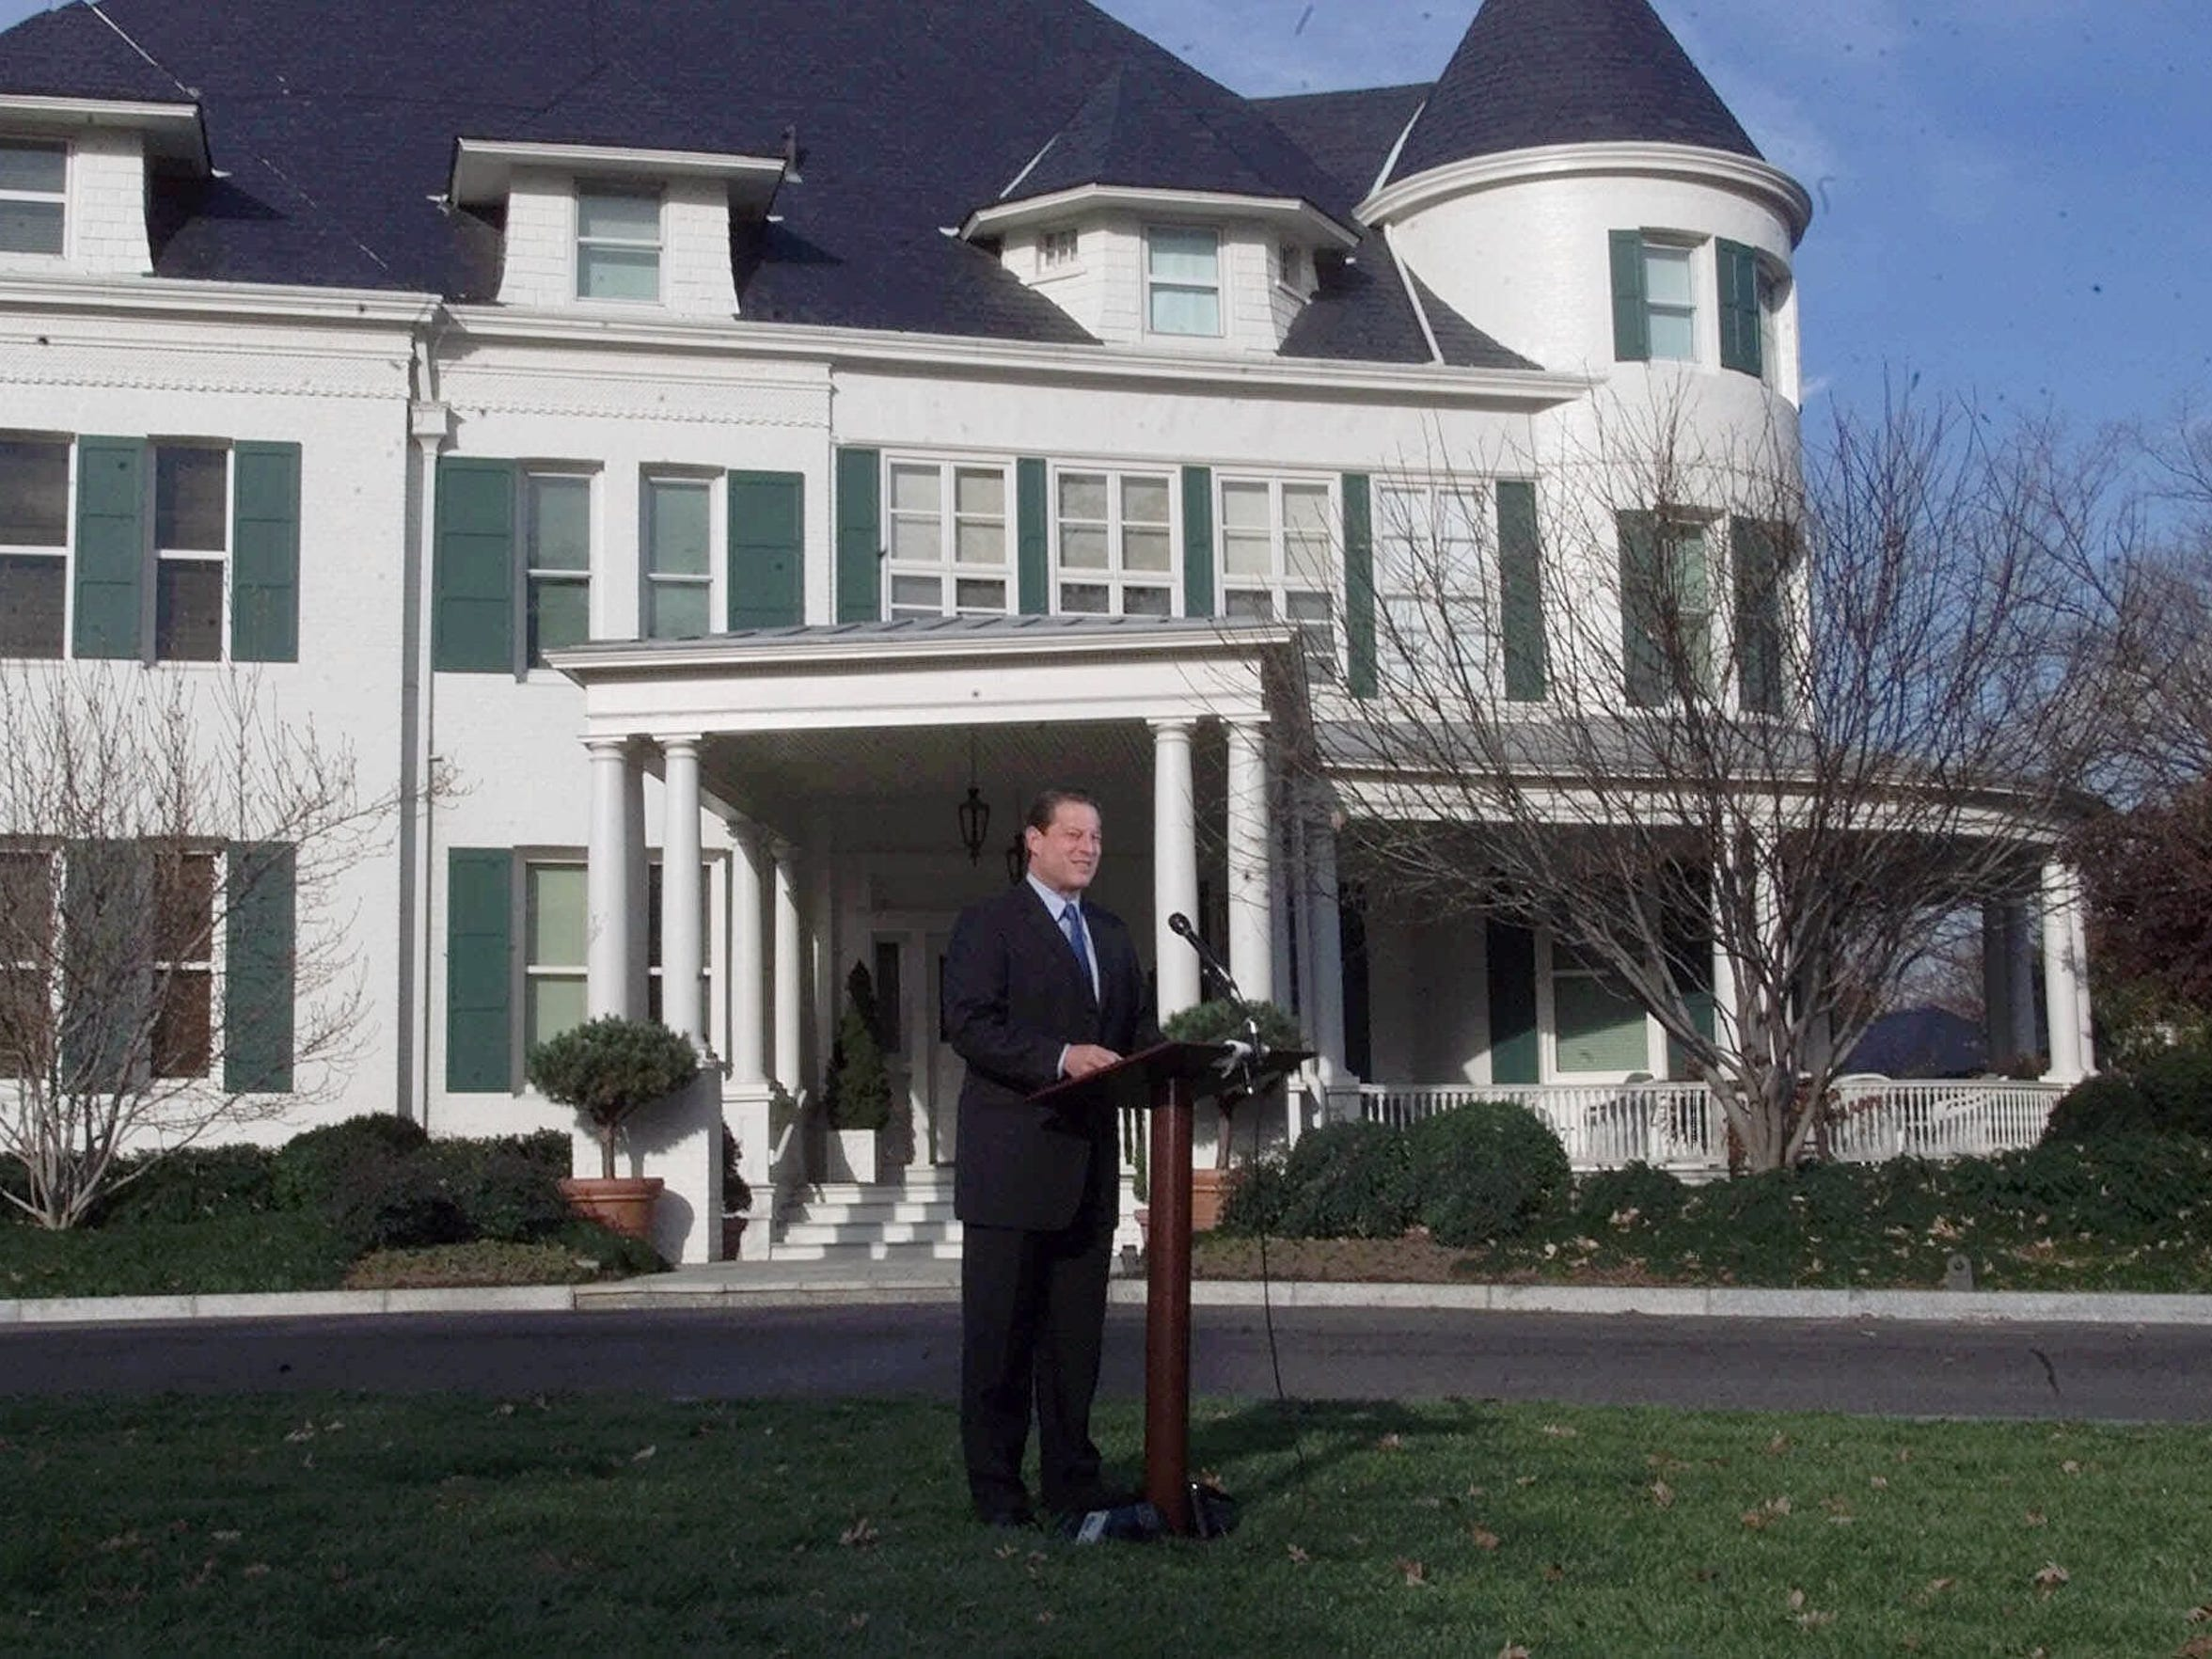 Vice President Al Gore talks with reporters outside of his residence at the United States Naval Observatory Nov. 28, 2000, amid an ongoing recount of votes in Florida. The U.S. Supreme Court would eventually halt that recount, handing the election to George W. Bush.